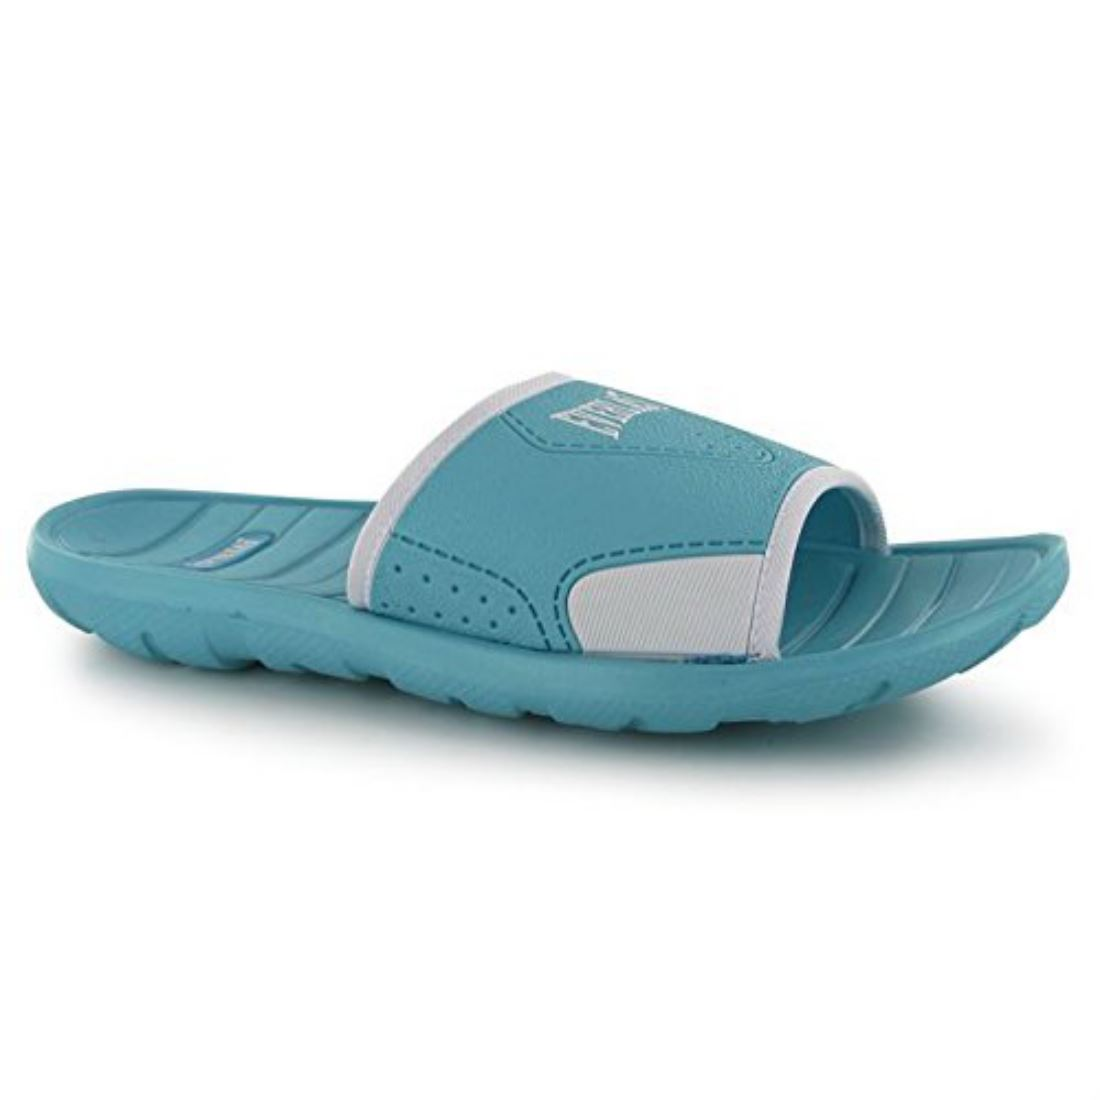 Everlast Womens Ladies Pool Shoes Water Swimming Shower Beach Sport Sandals Ebay